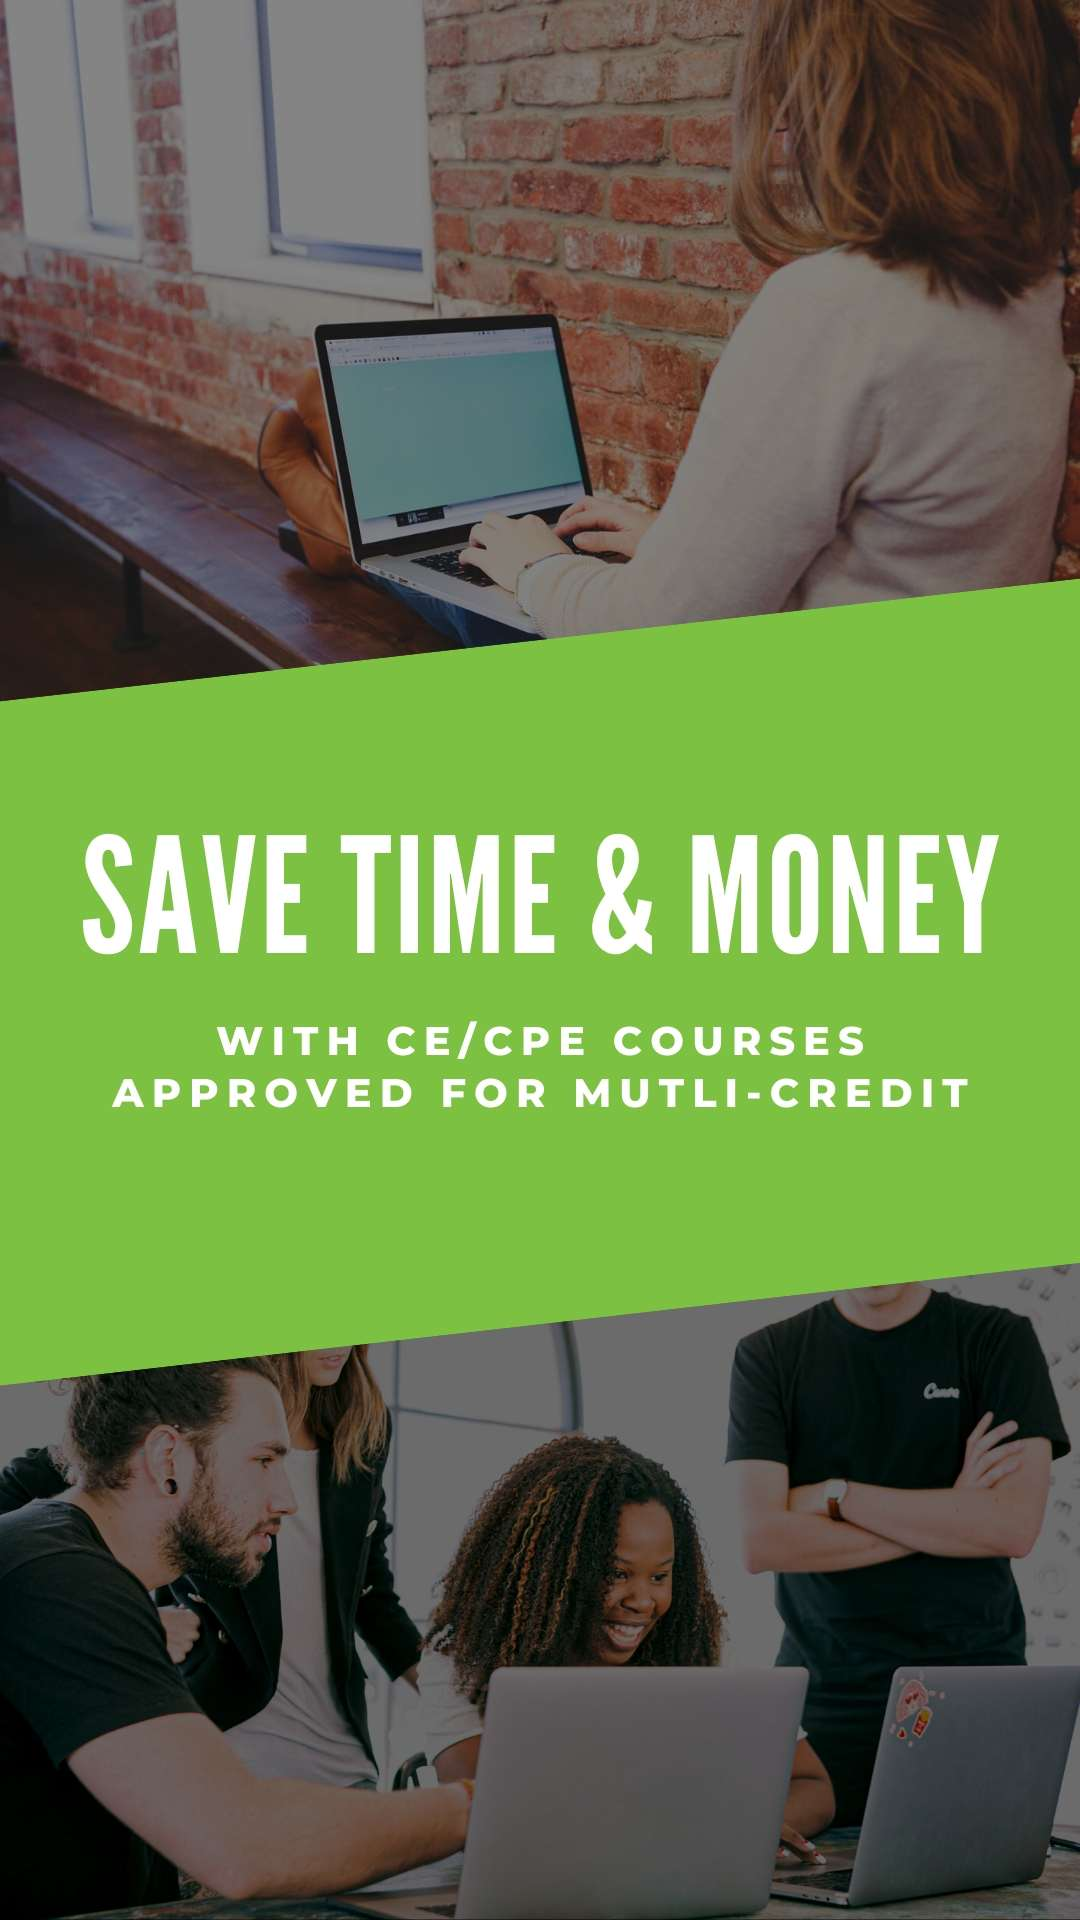 Save Time & Money with Multi-Credit CE Courses